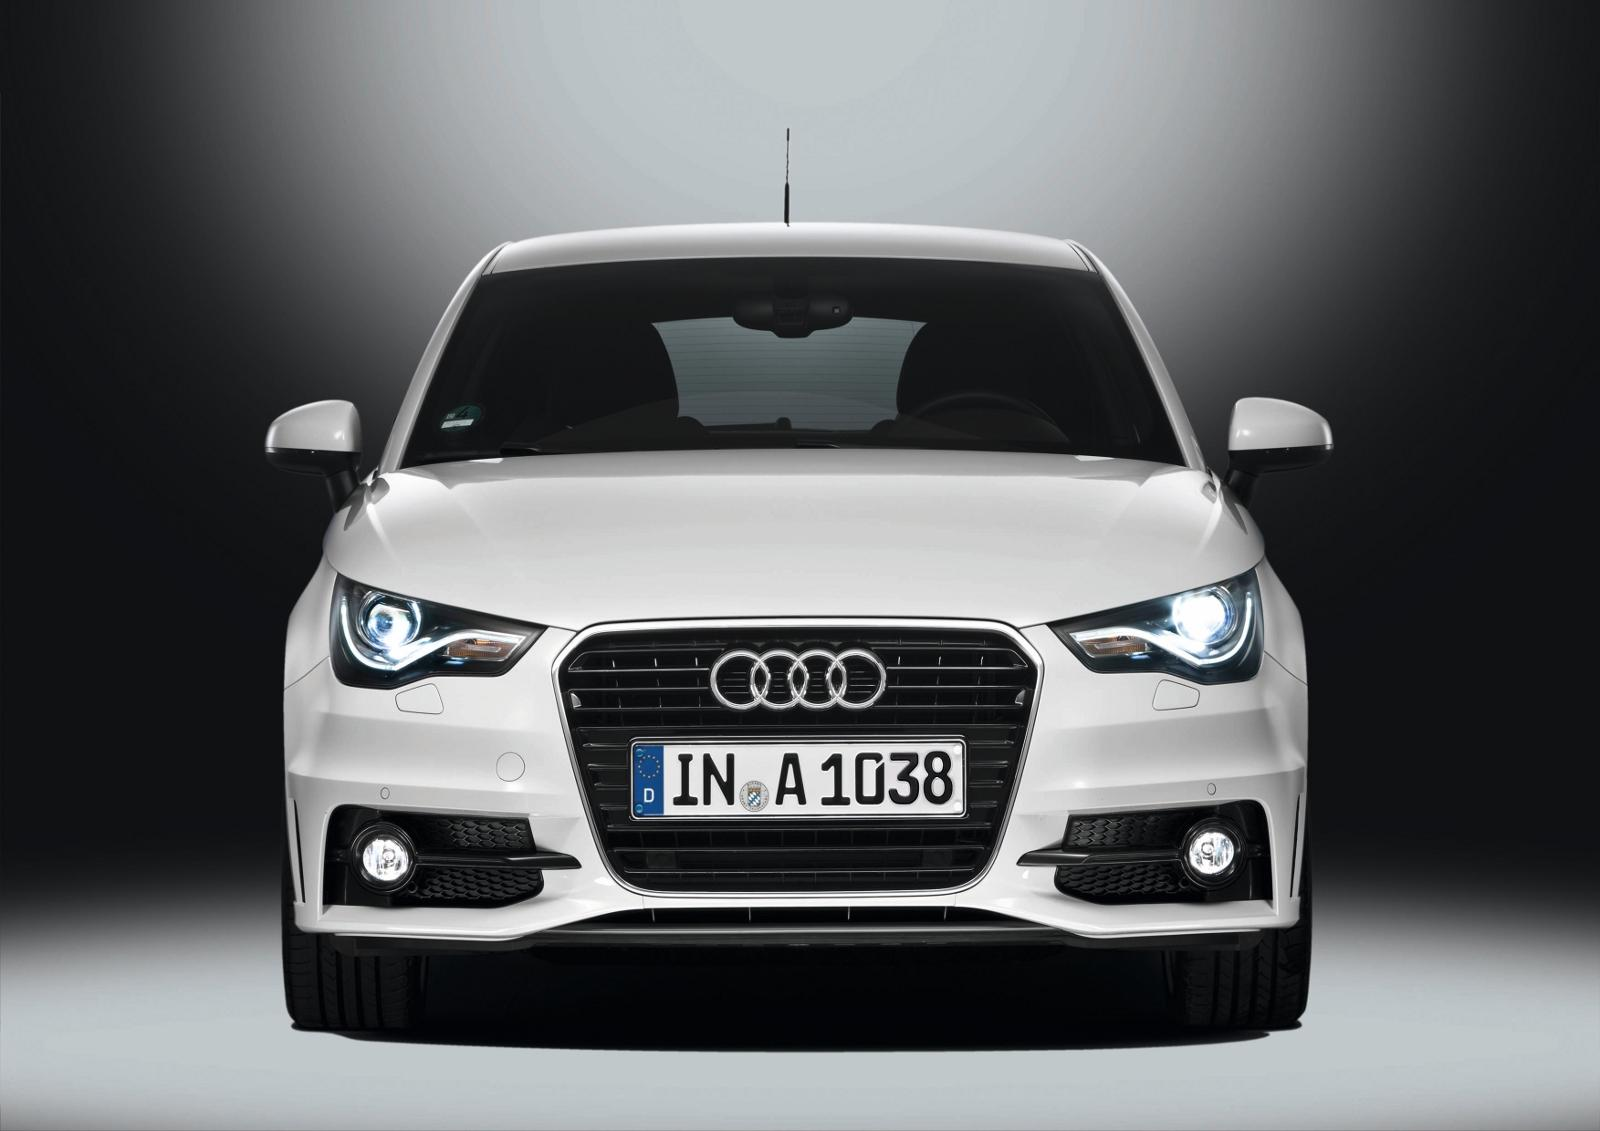 1600x1131 - Audi A1 Wallpapers 28